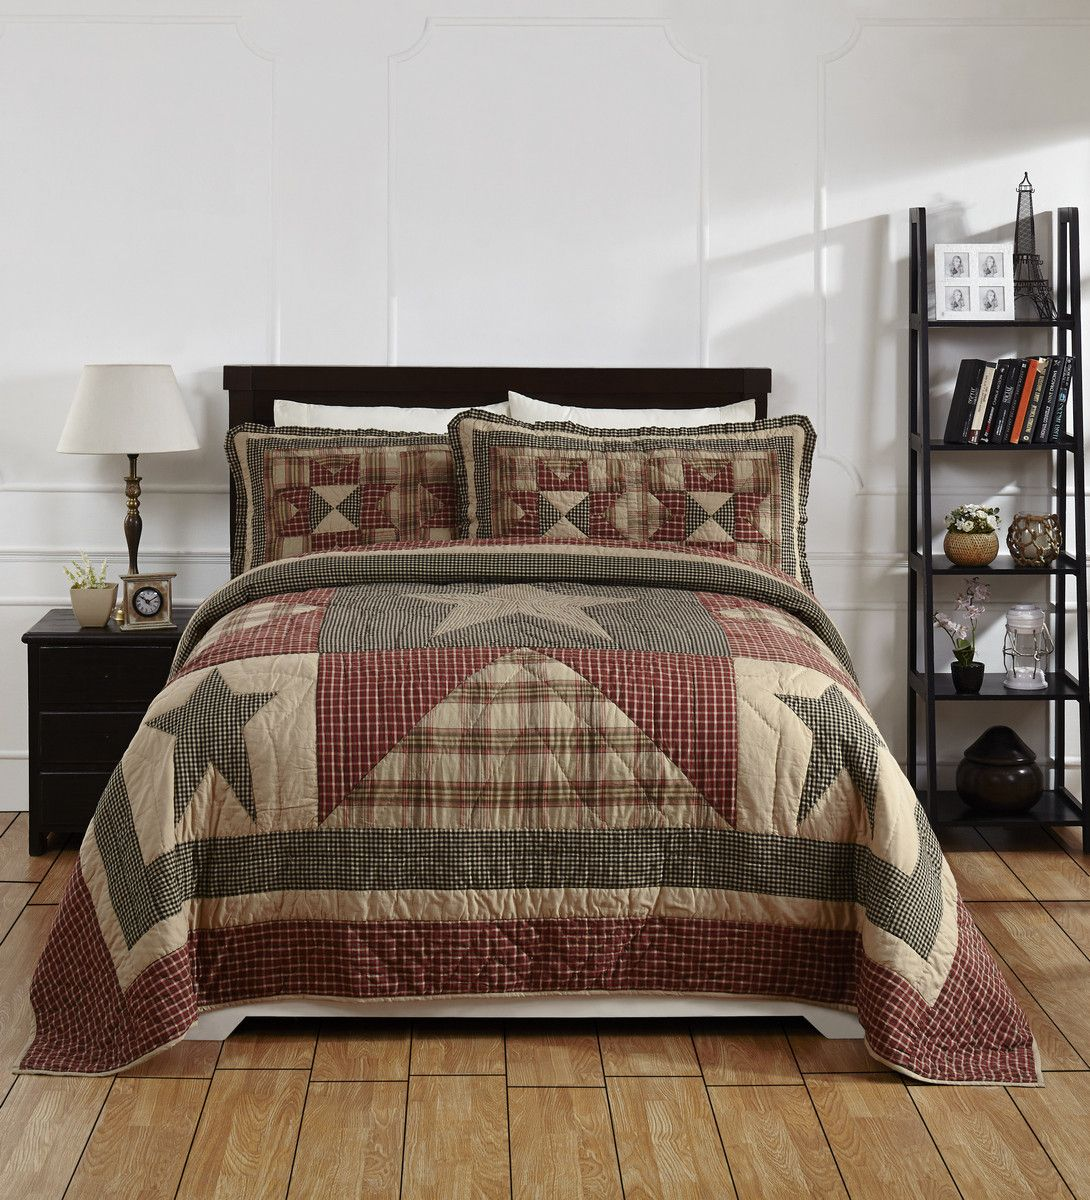 Plymouth Queen/Full Quilt Set | Plymouth, Primitive stars and Queens : star quilt set - Adamdwight.com